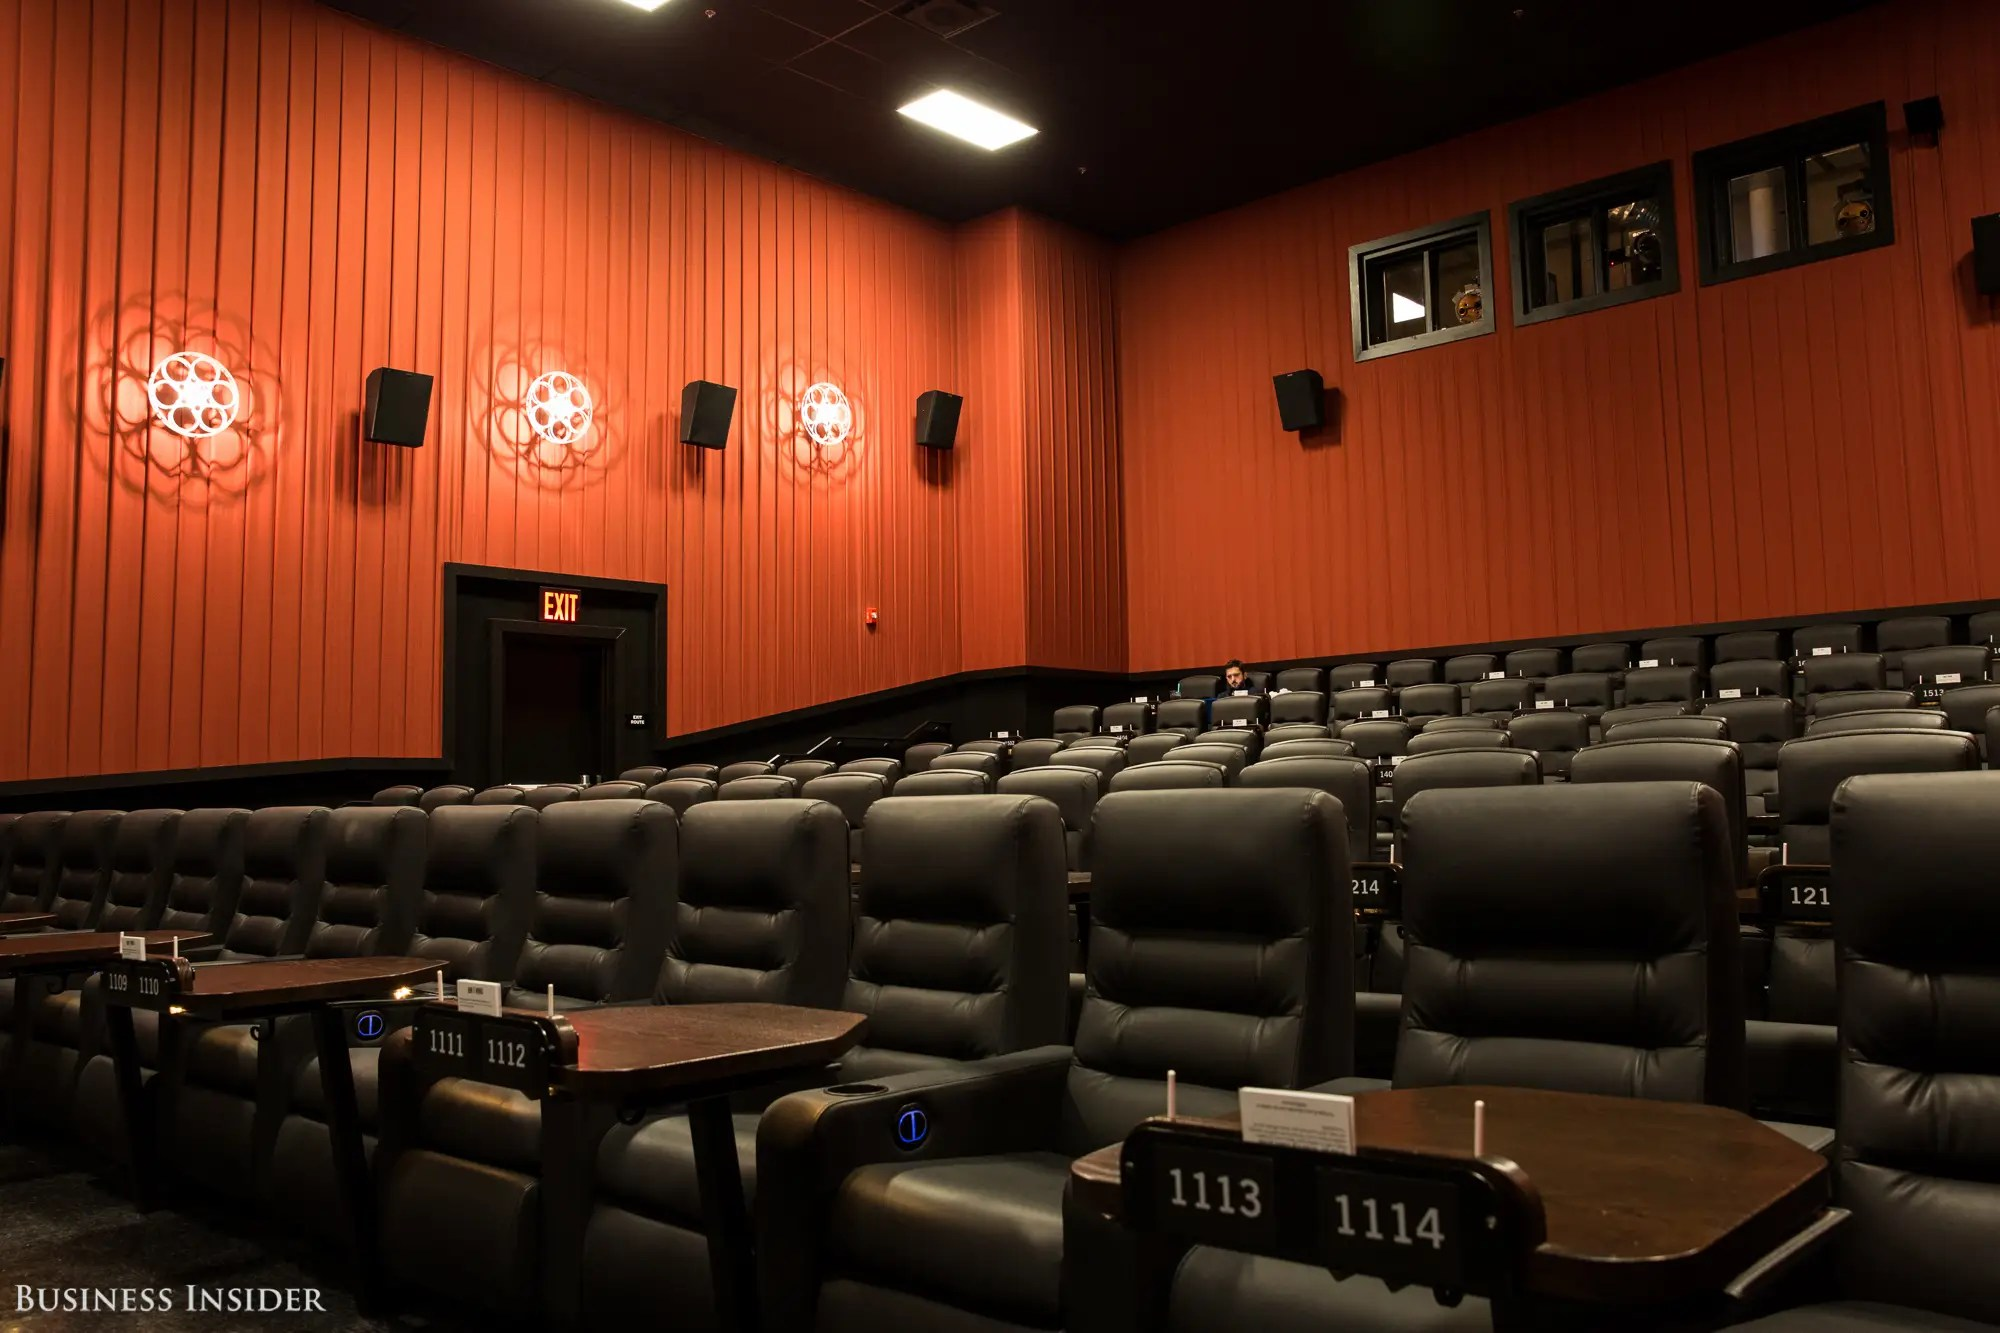 chairs at staples chair leg noise reduction alamo drafthouse in brooklyn new york: inside the luxury movie theater - business insider